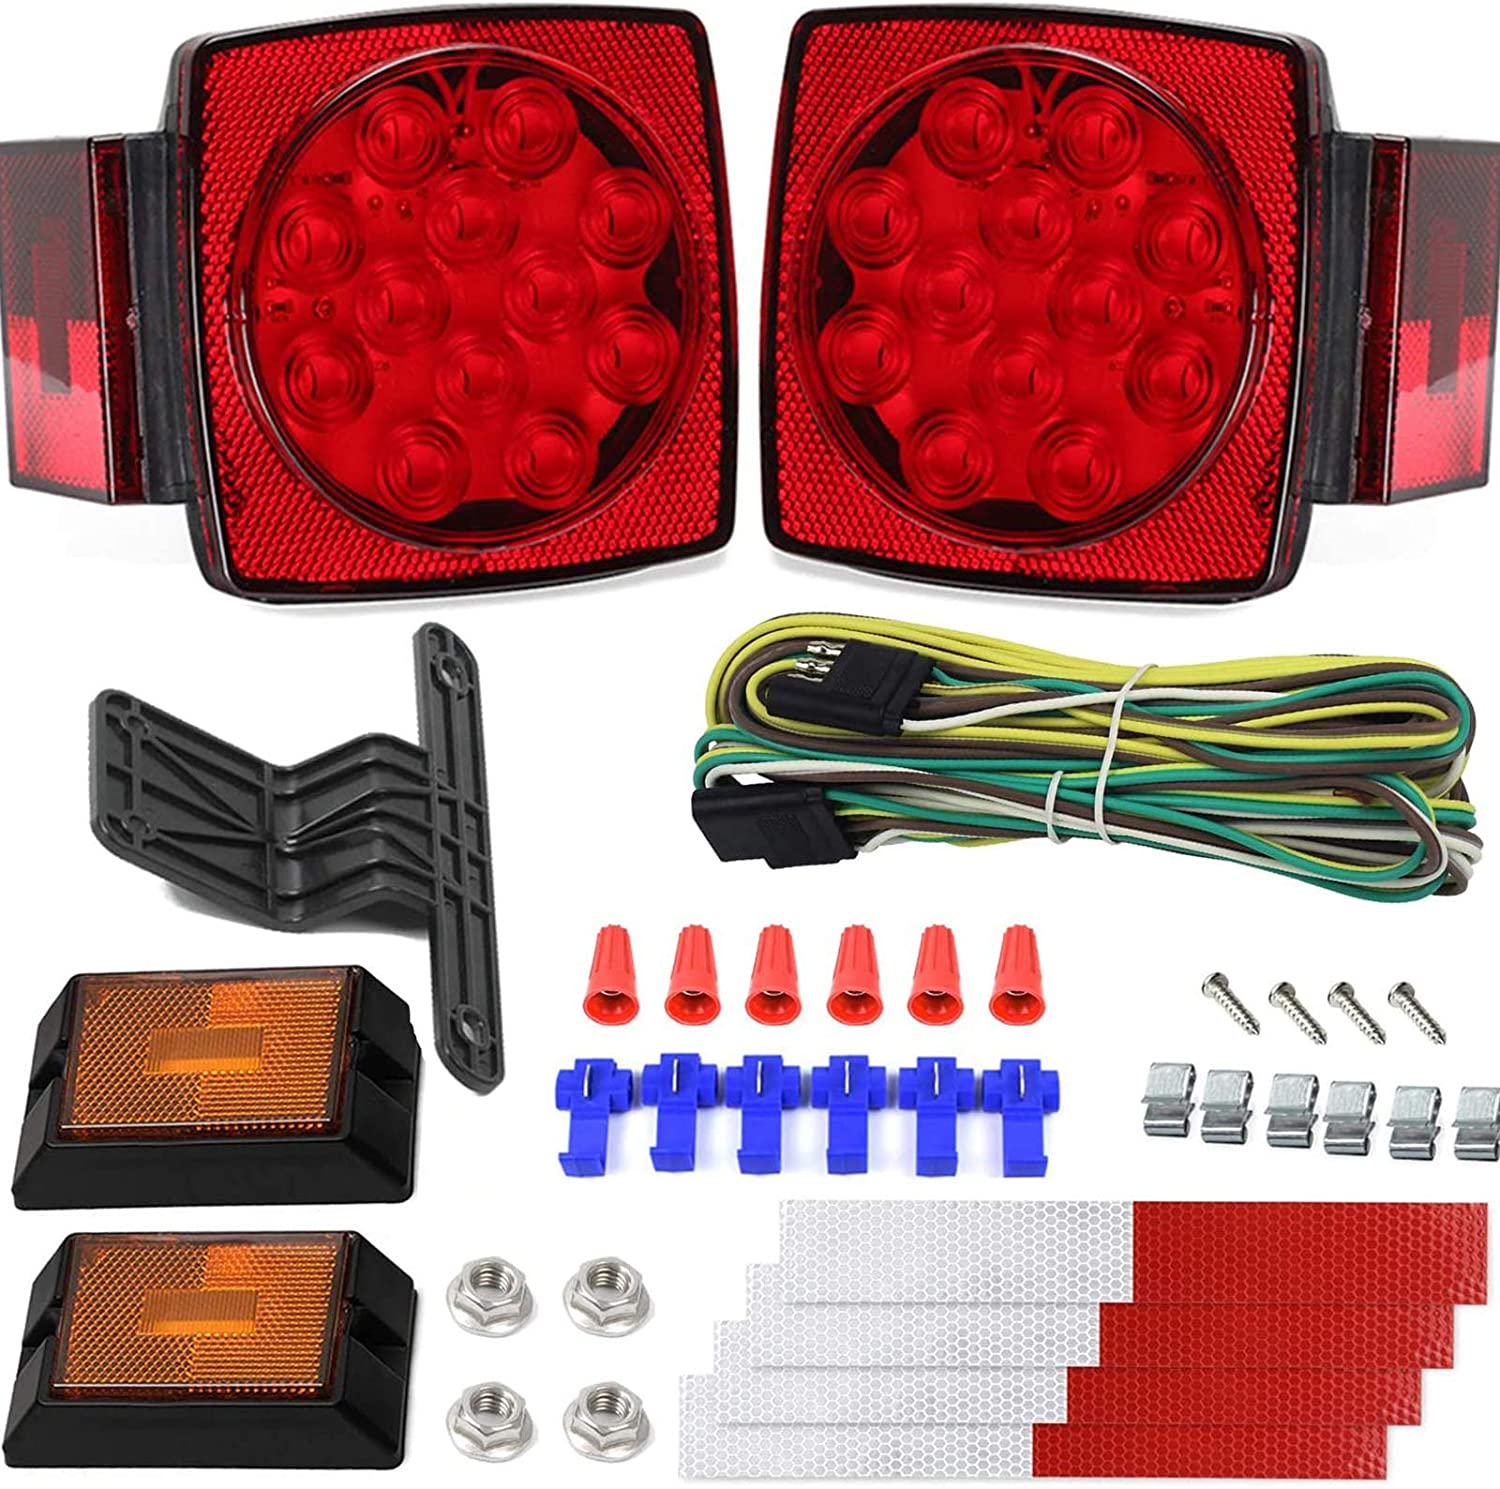 Amazon.com: 12V Trailer Light Kit DOT Certified Utility Trailer Lights for  Boat RV Car Easy Assembly with Wire Harness Wafer LED 50,000H Lifespan  Waterproof Durable All-in-one Tail Light Kit for Under 80Amazon.com